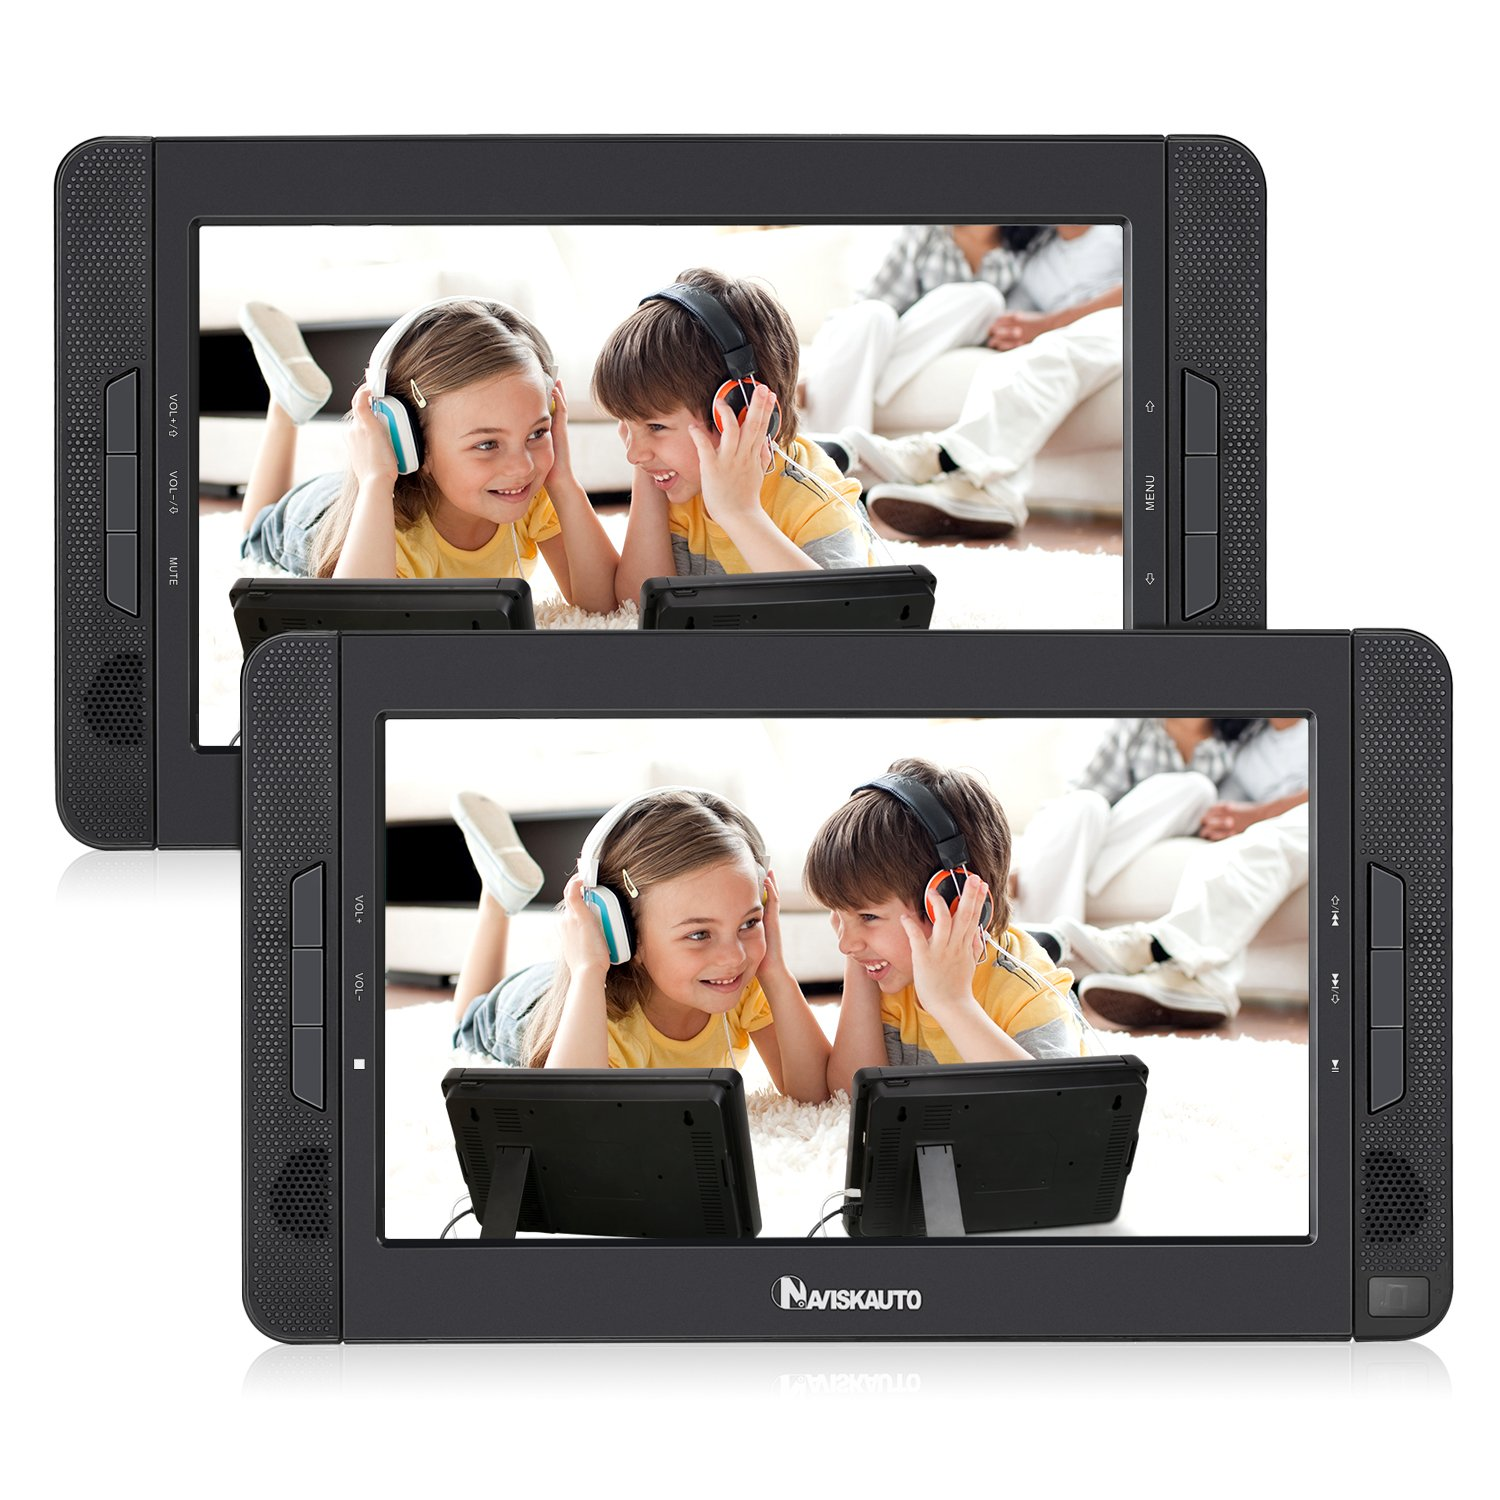 NAVISKAUTO Portable DVD Player for Car with 10.1'' Dual Screen, 5-Hour Rechargeable Battery and Last Memory Function (Host DVD Player+ Slave Monitor)